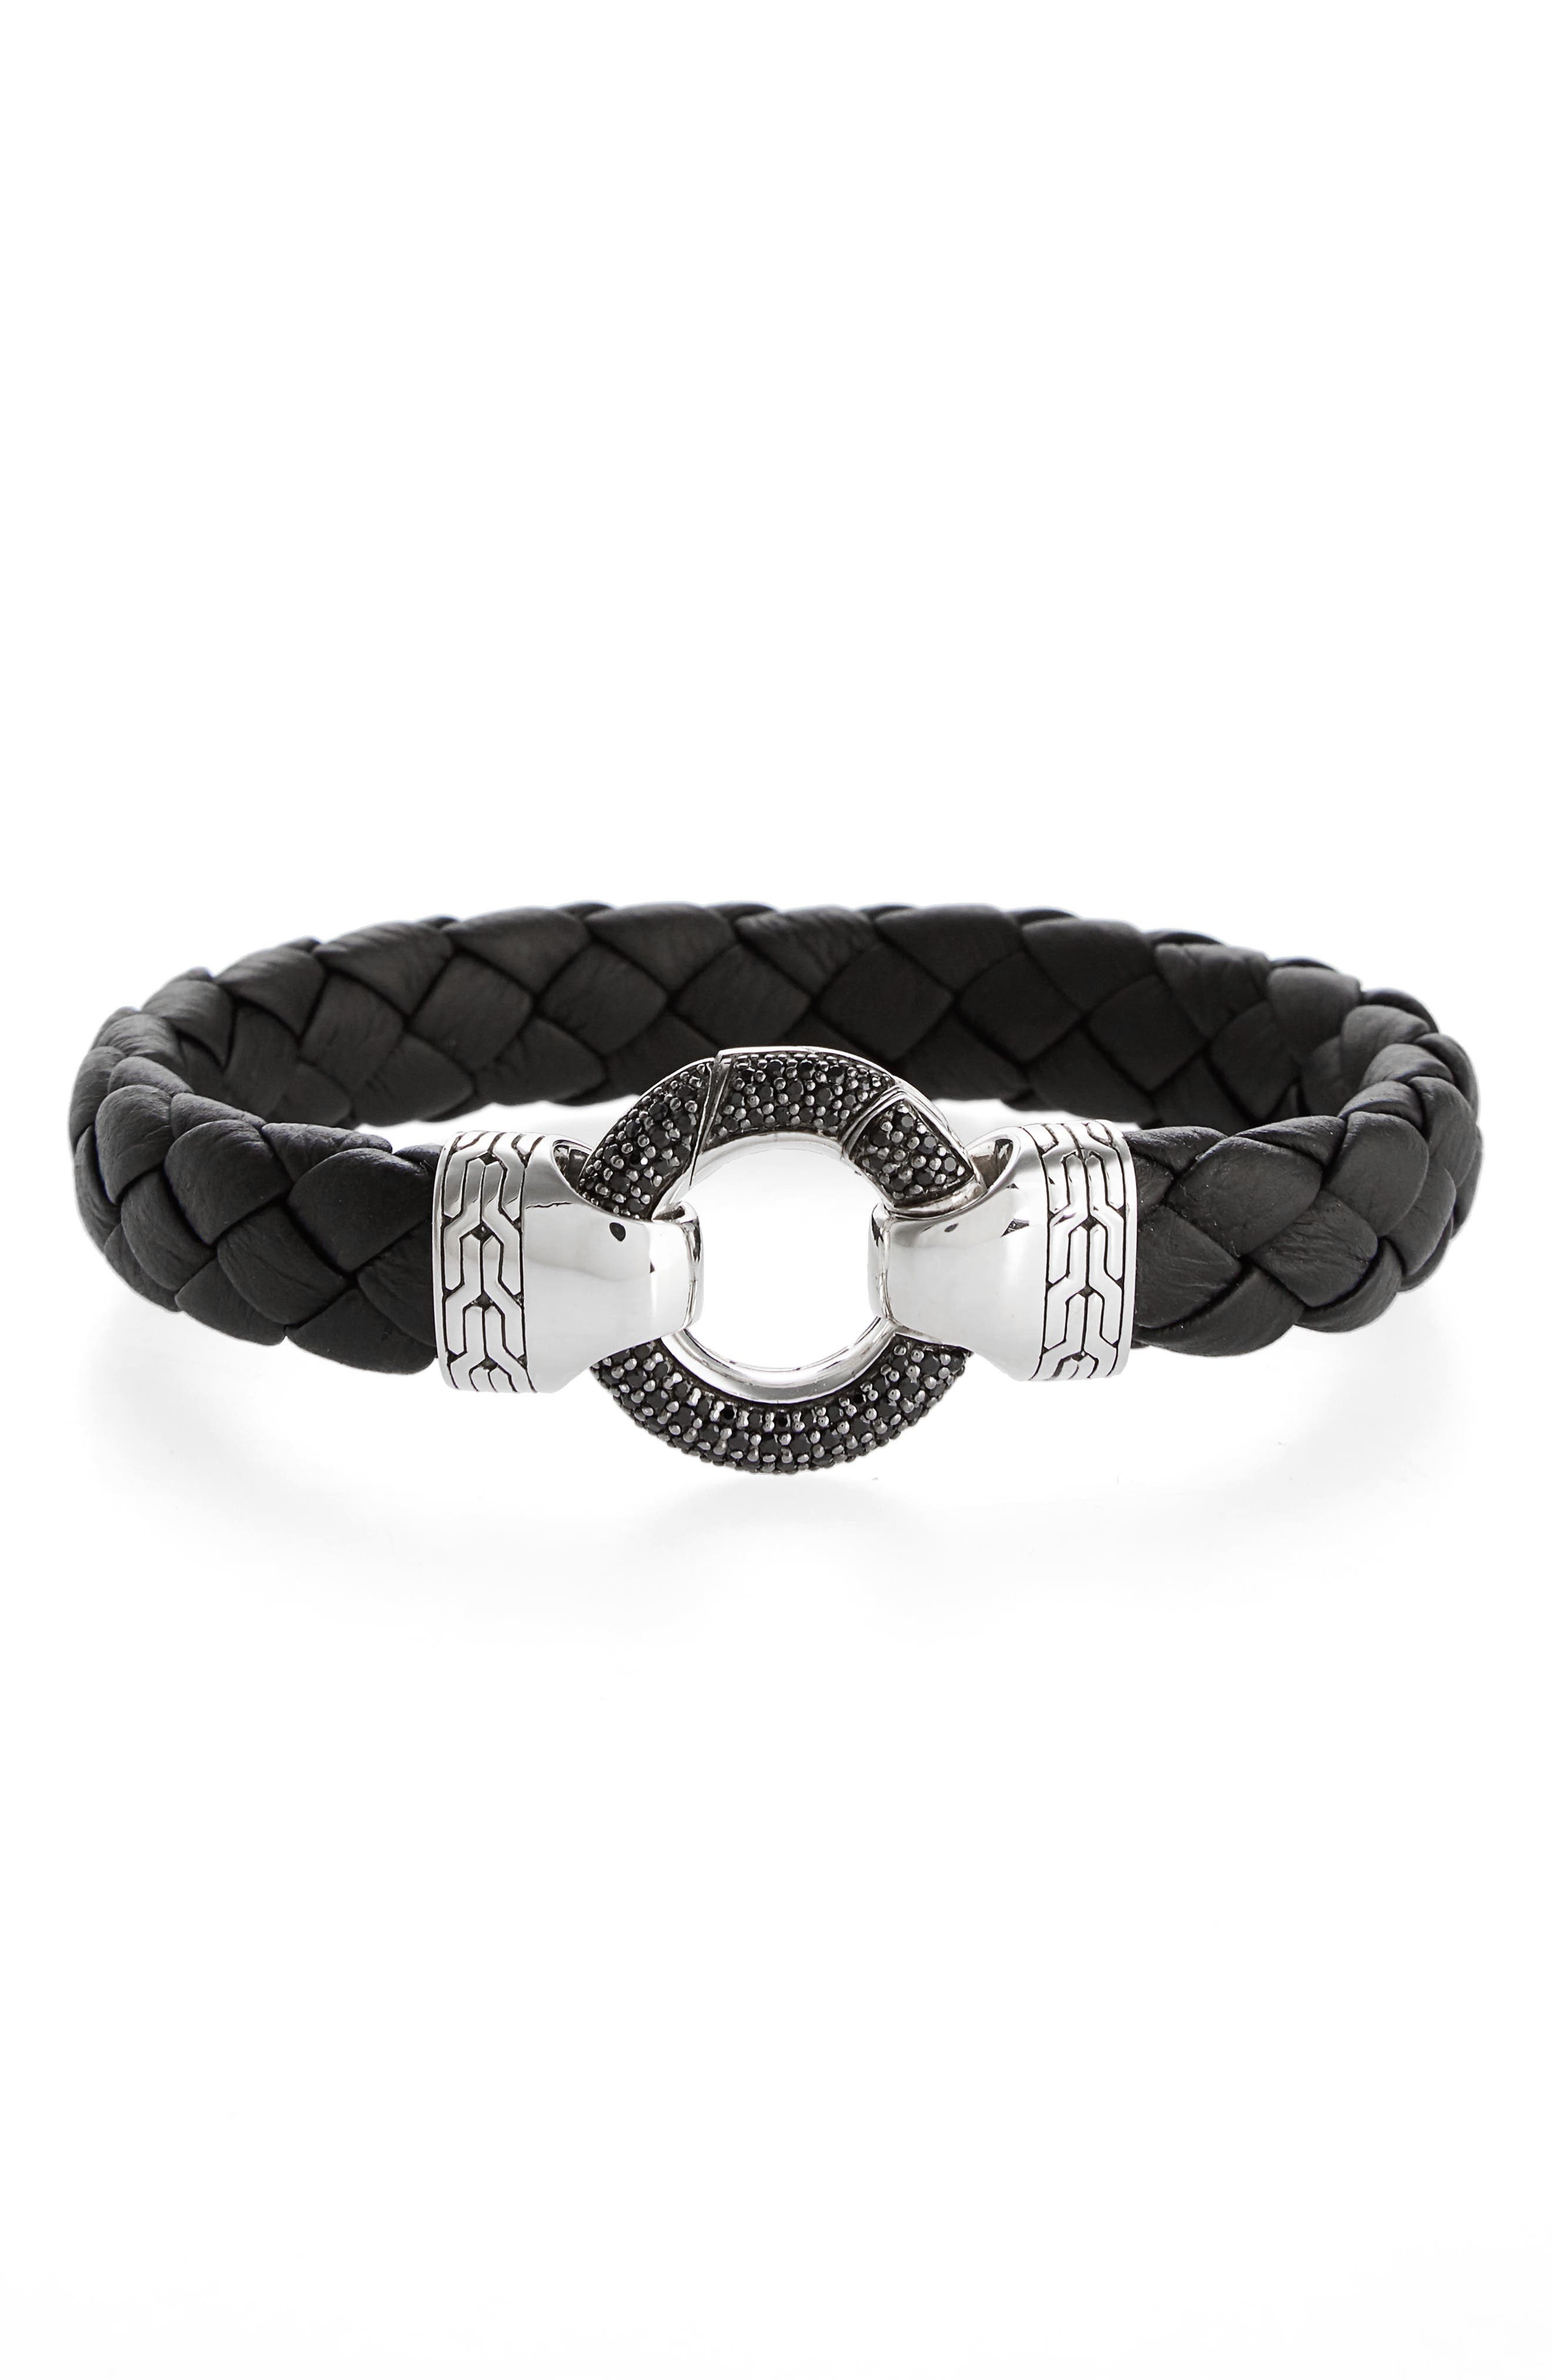 Classic Chain Ring Clasp Leather Bracelet,                         Main,                         color, Black/ Silver